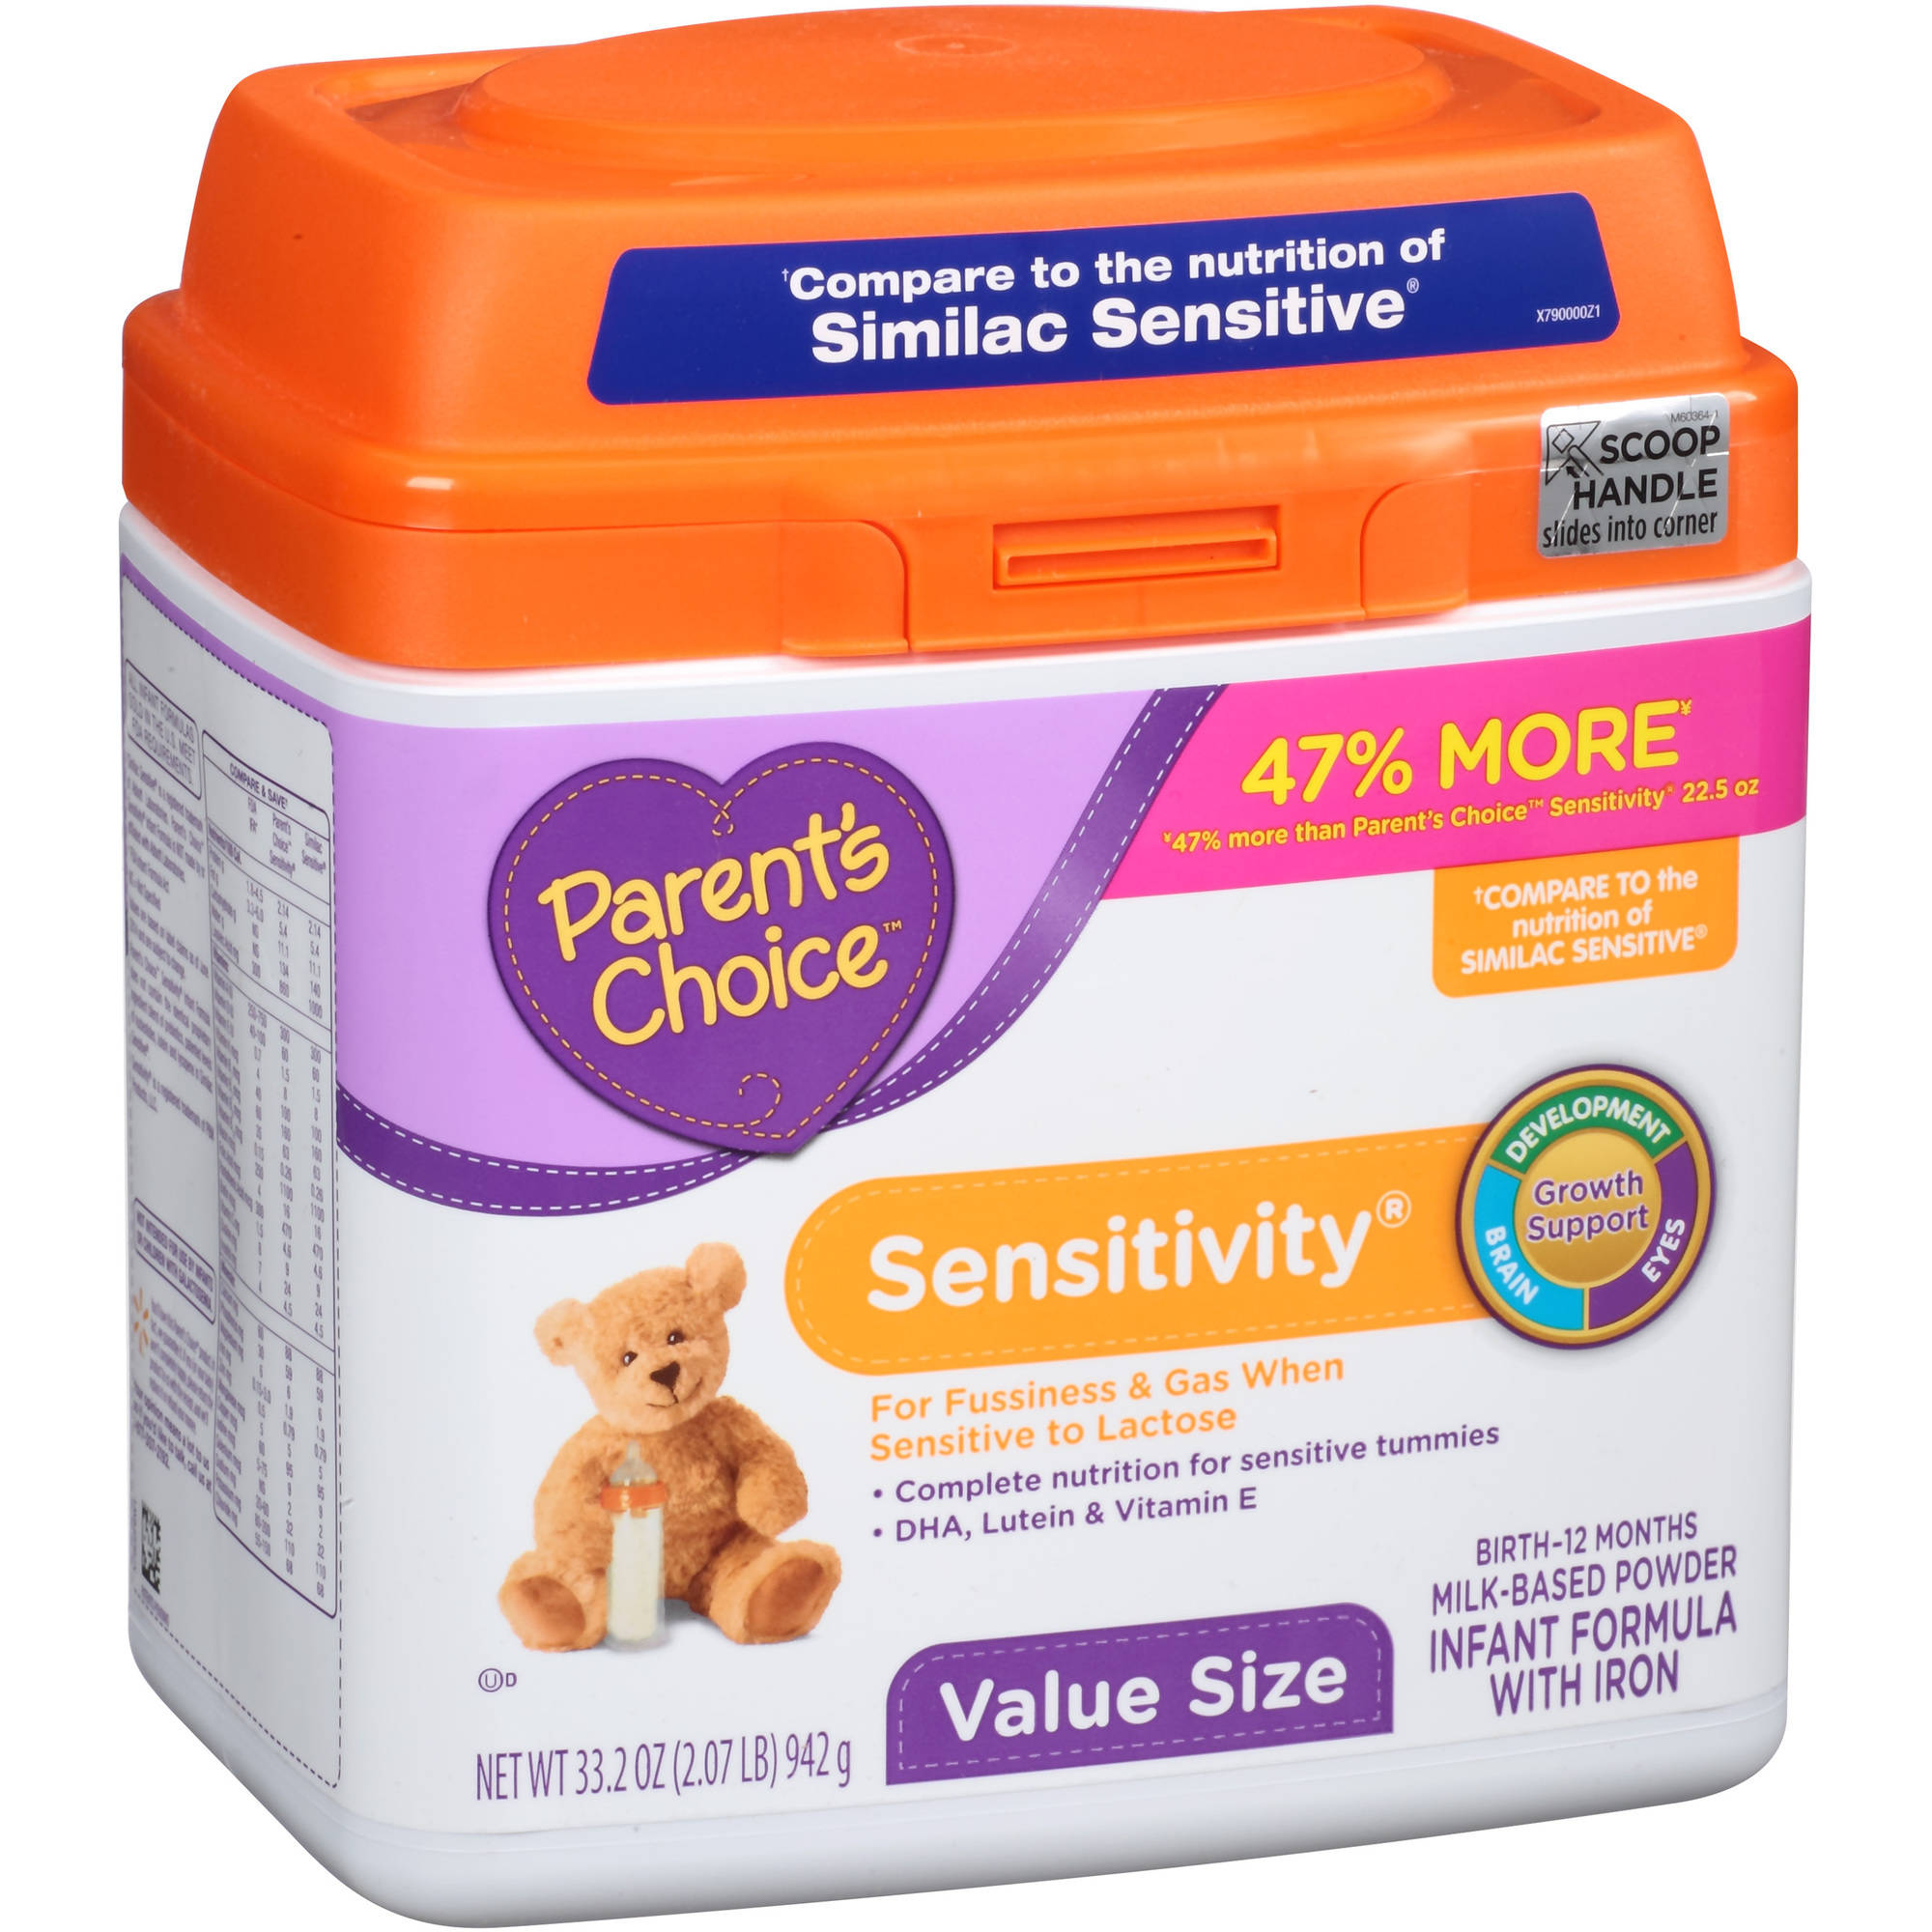 Parent's Choice Sensitivity Powder Infant Formula with Iron, 35oz